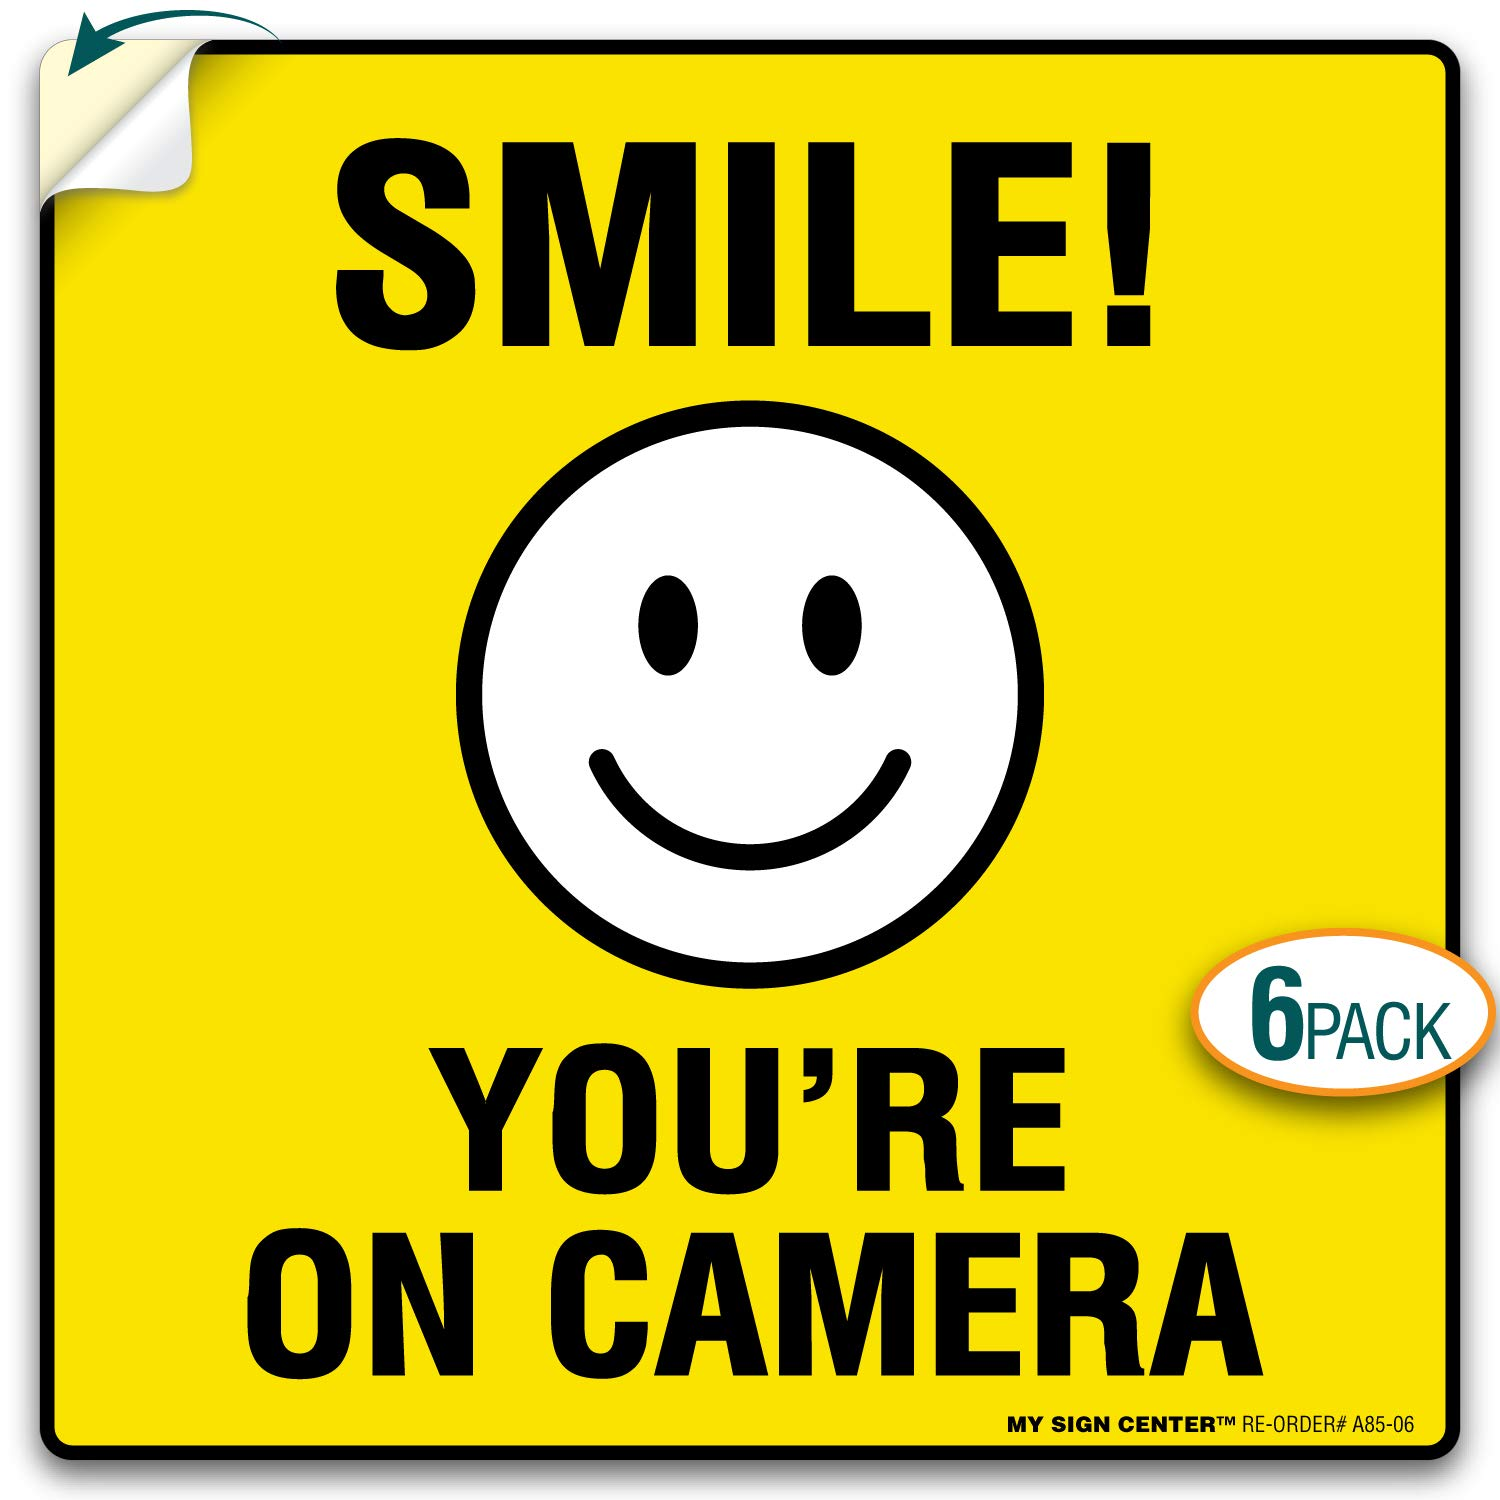 My sign center 4 pack smile youre on camera sticker 24 hour video surveillance sticker premium 4 mil self adhesive vinyl decal indoor and outdoor use